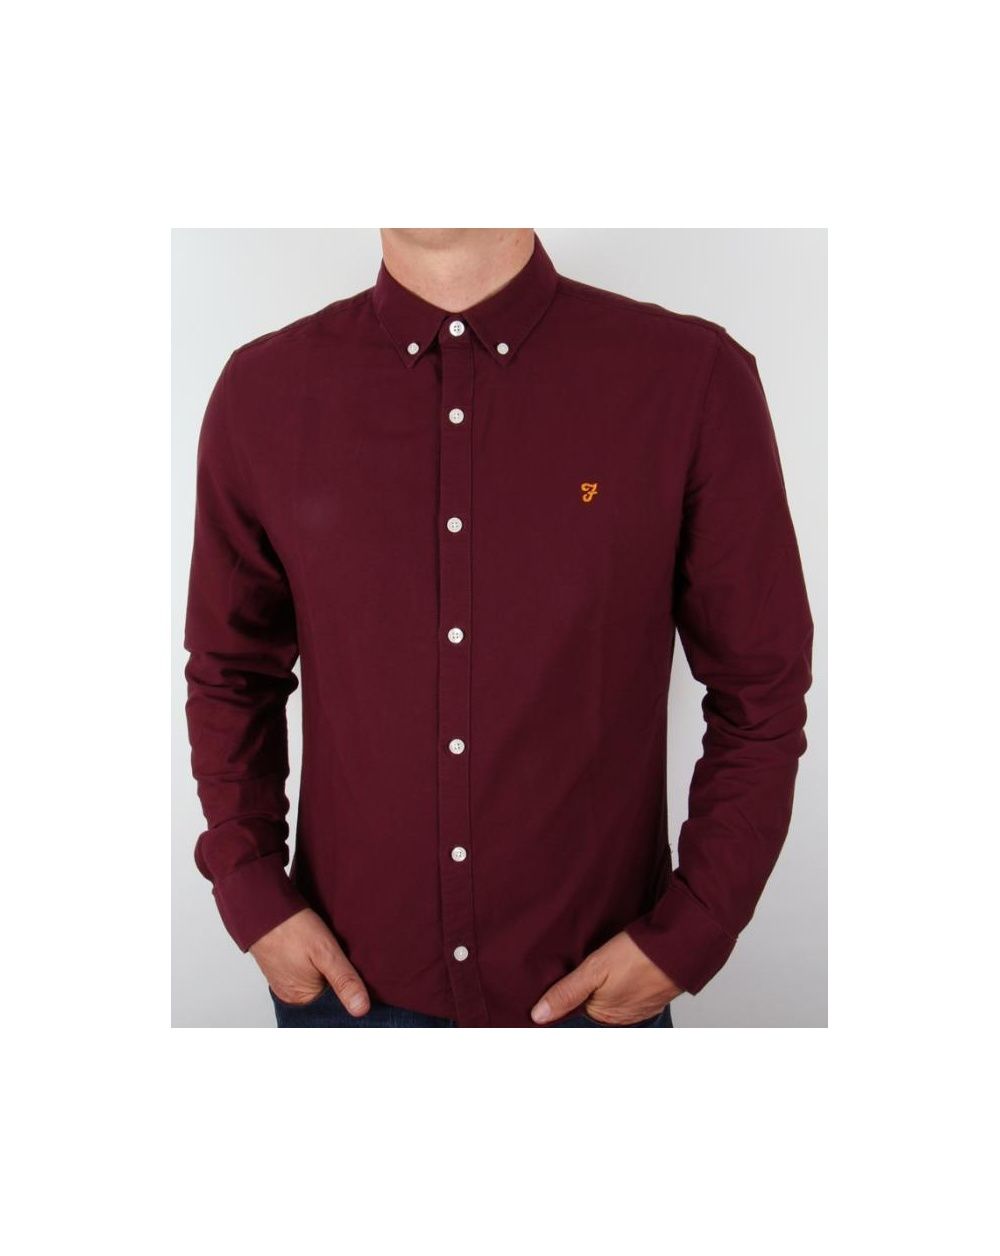 Farah Brewer Shirt Burgundy Long Sleeve Vintage Mens